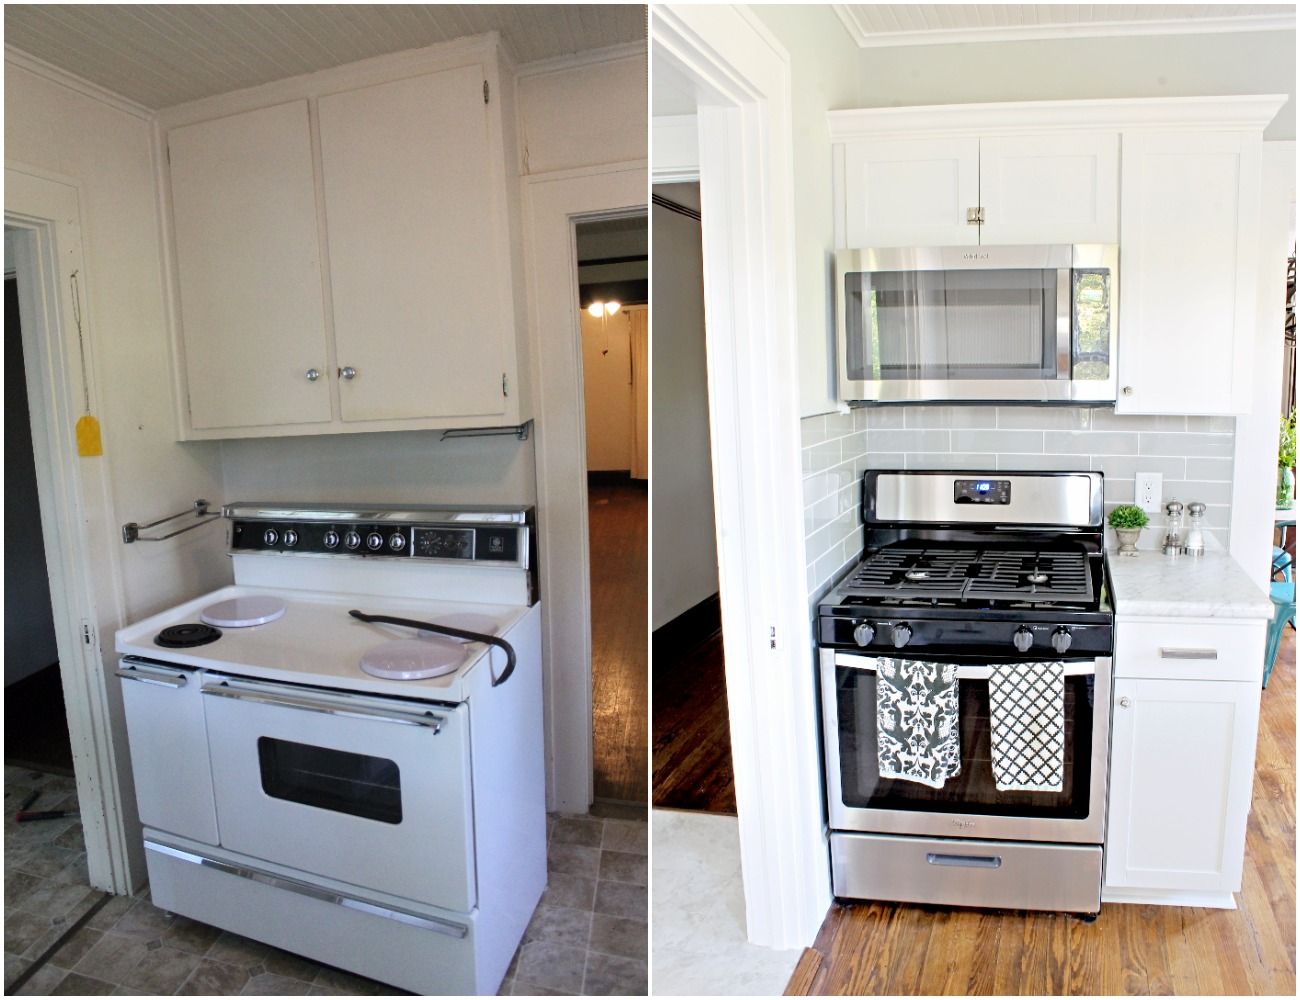 House Flipping Before and Afters - DIY BUDGET KITCHEN IDEAS WHITE SHAKER CABINETS (1).jpg